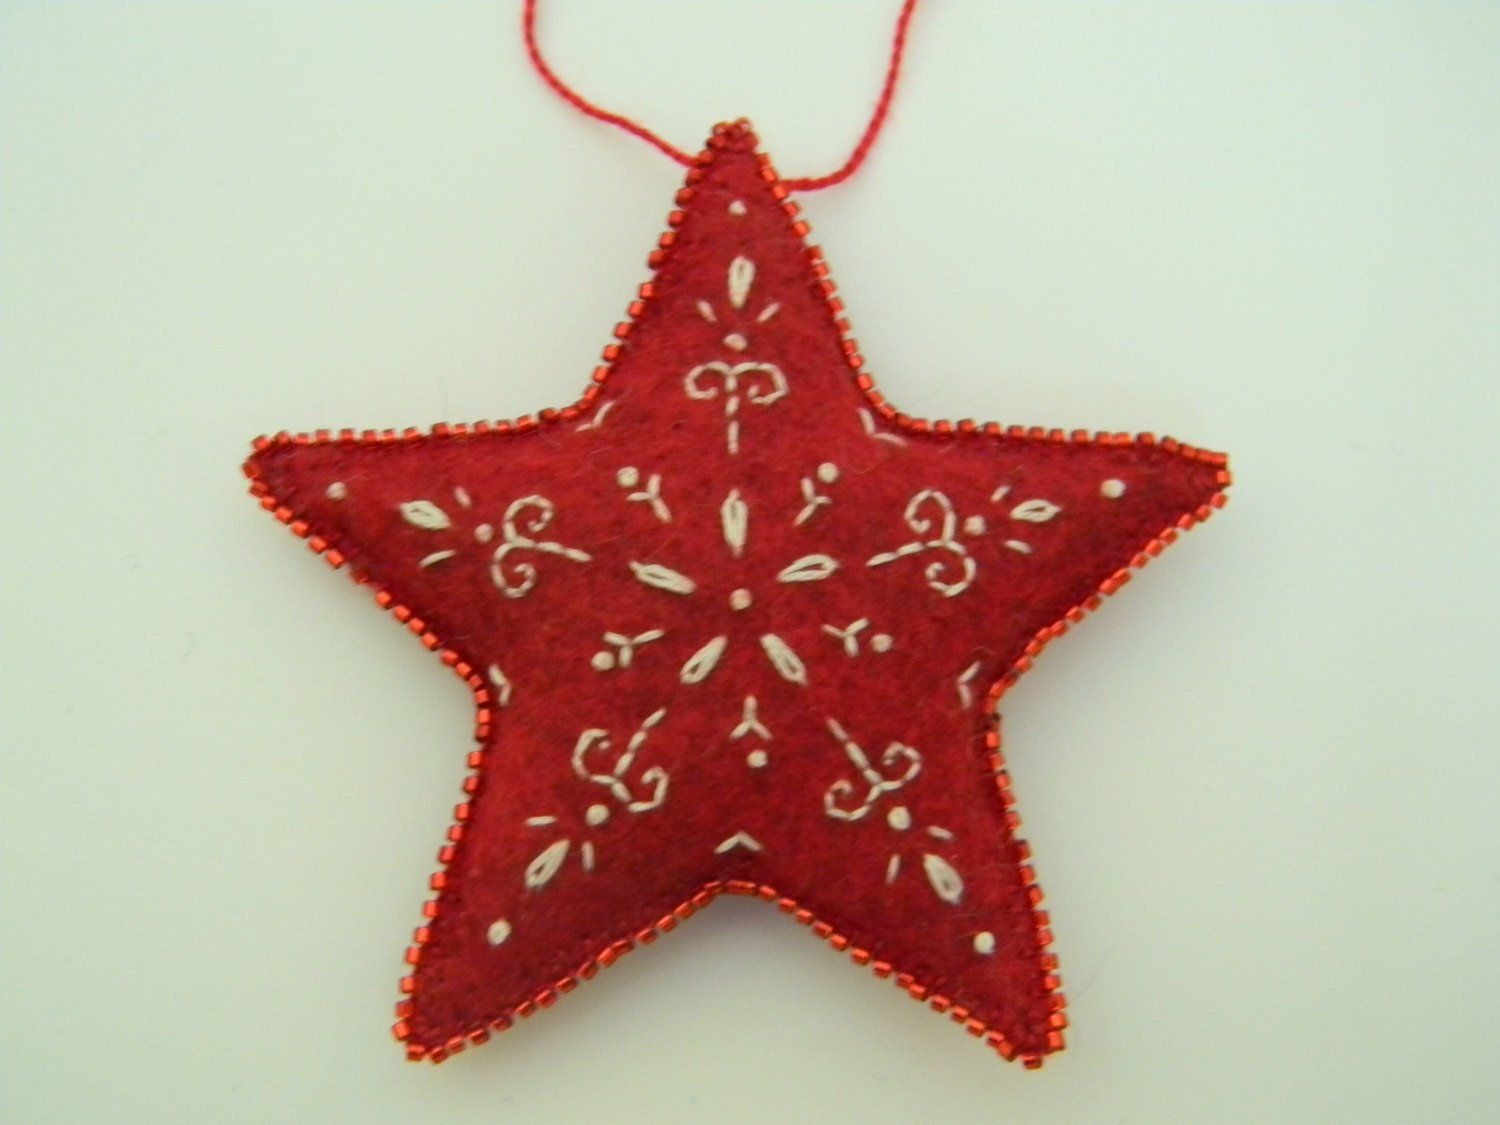 Red Embroidered Felt Star Ornament Etsy Diy Felt Christmas Ornaments Felt Christmas Ornaments Felt Christmas Decorations